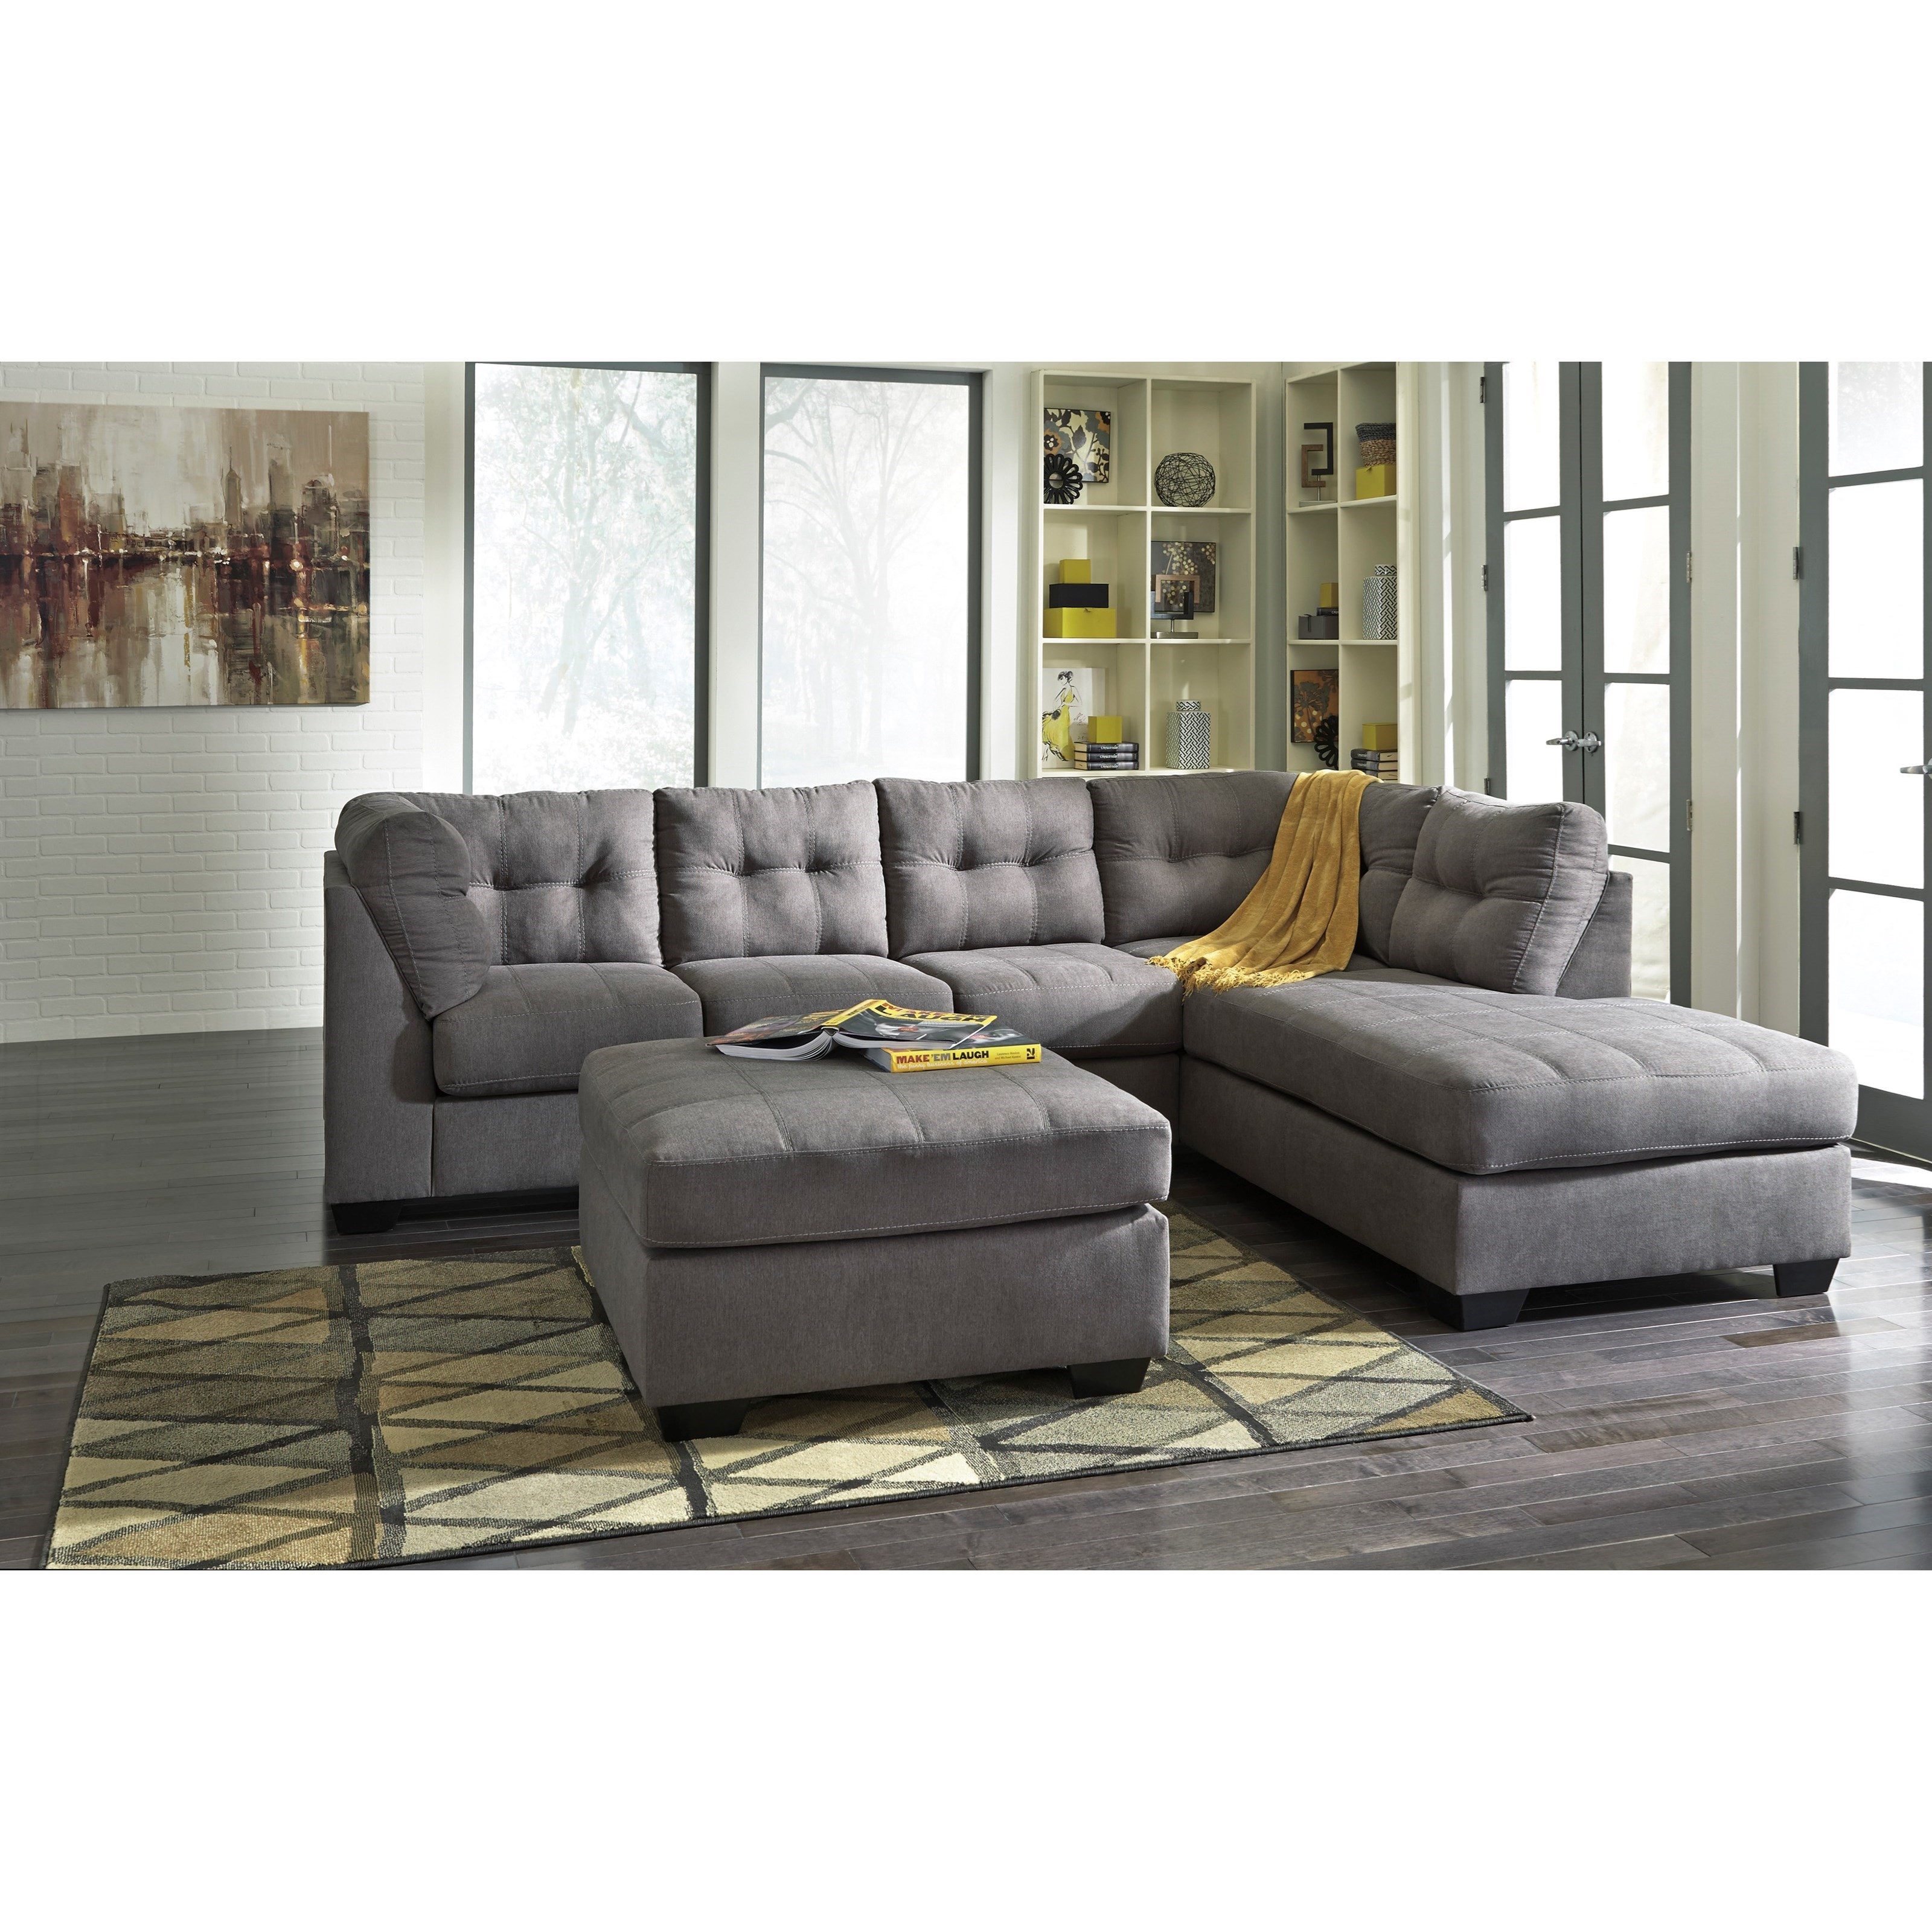 Maier Living Room Group by Benchcraft at Northeast Factory Direct